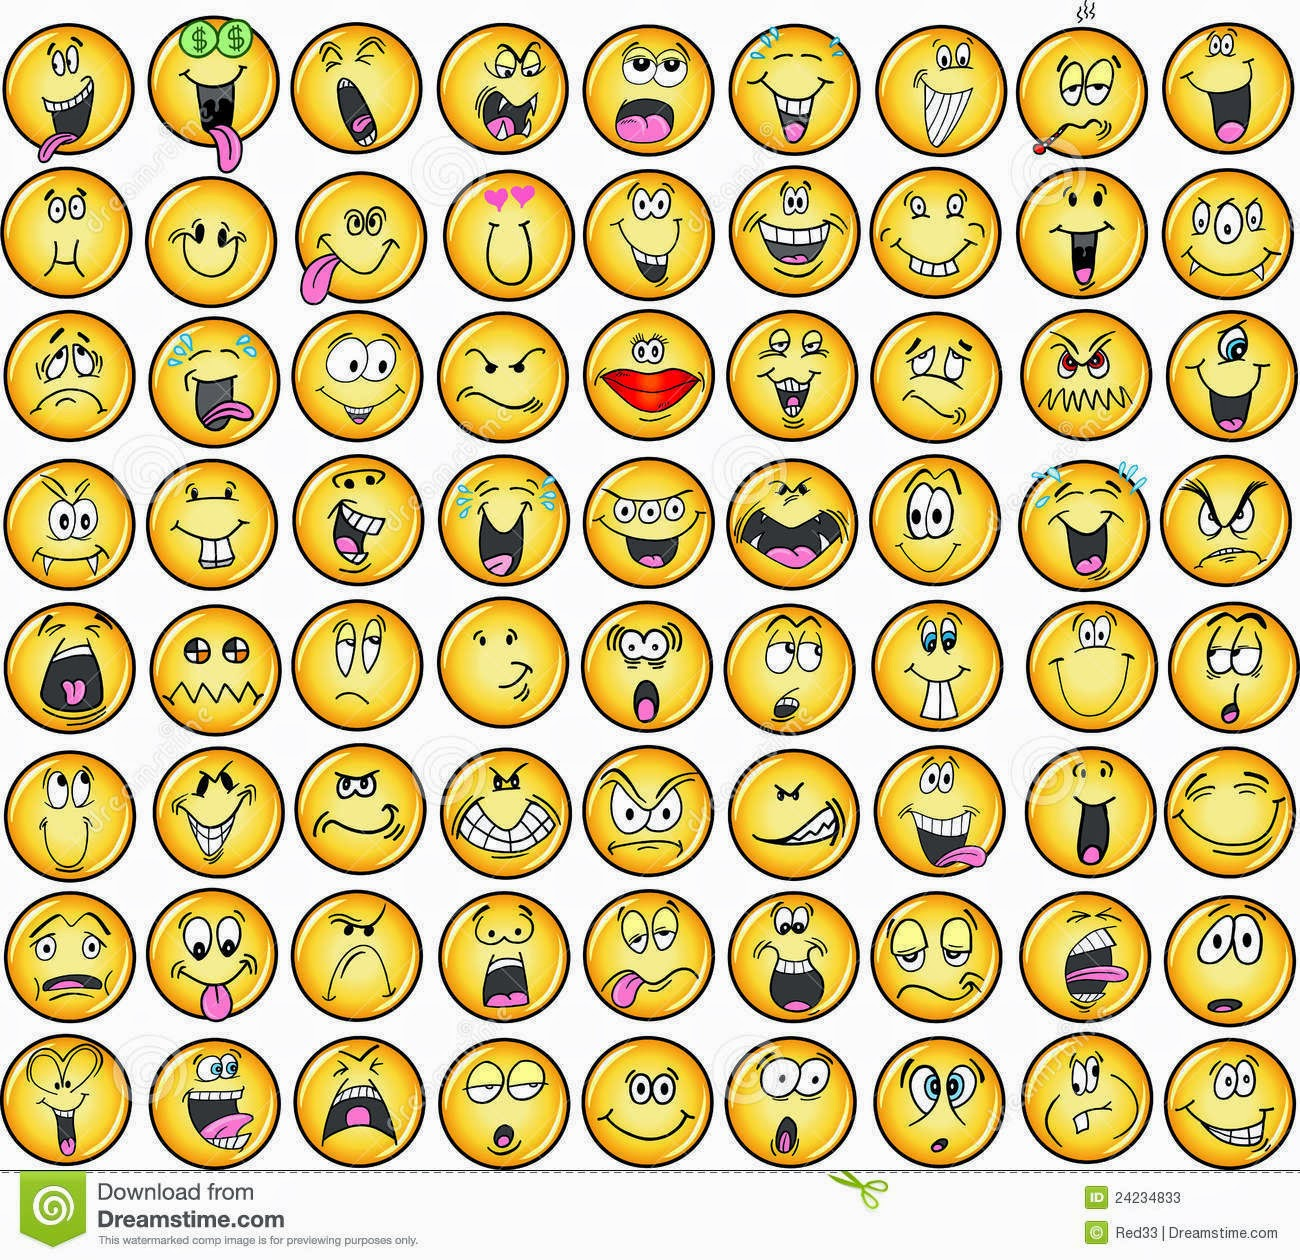 emotion smiley faces - photo #29